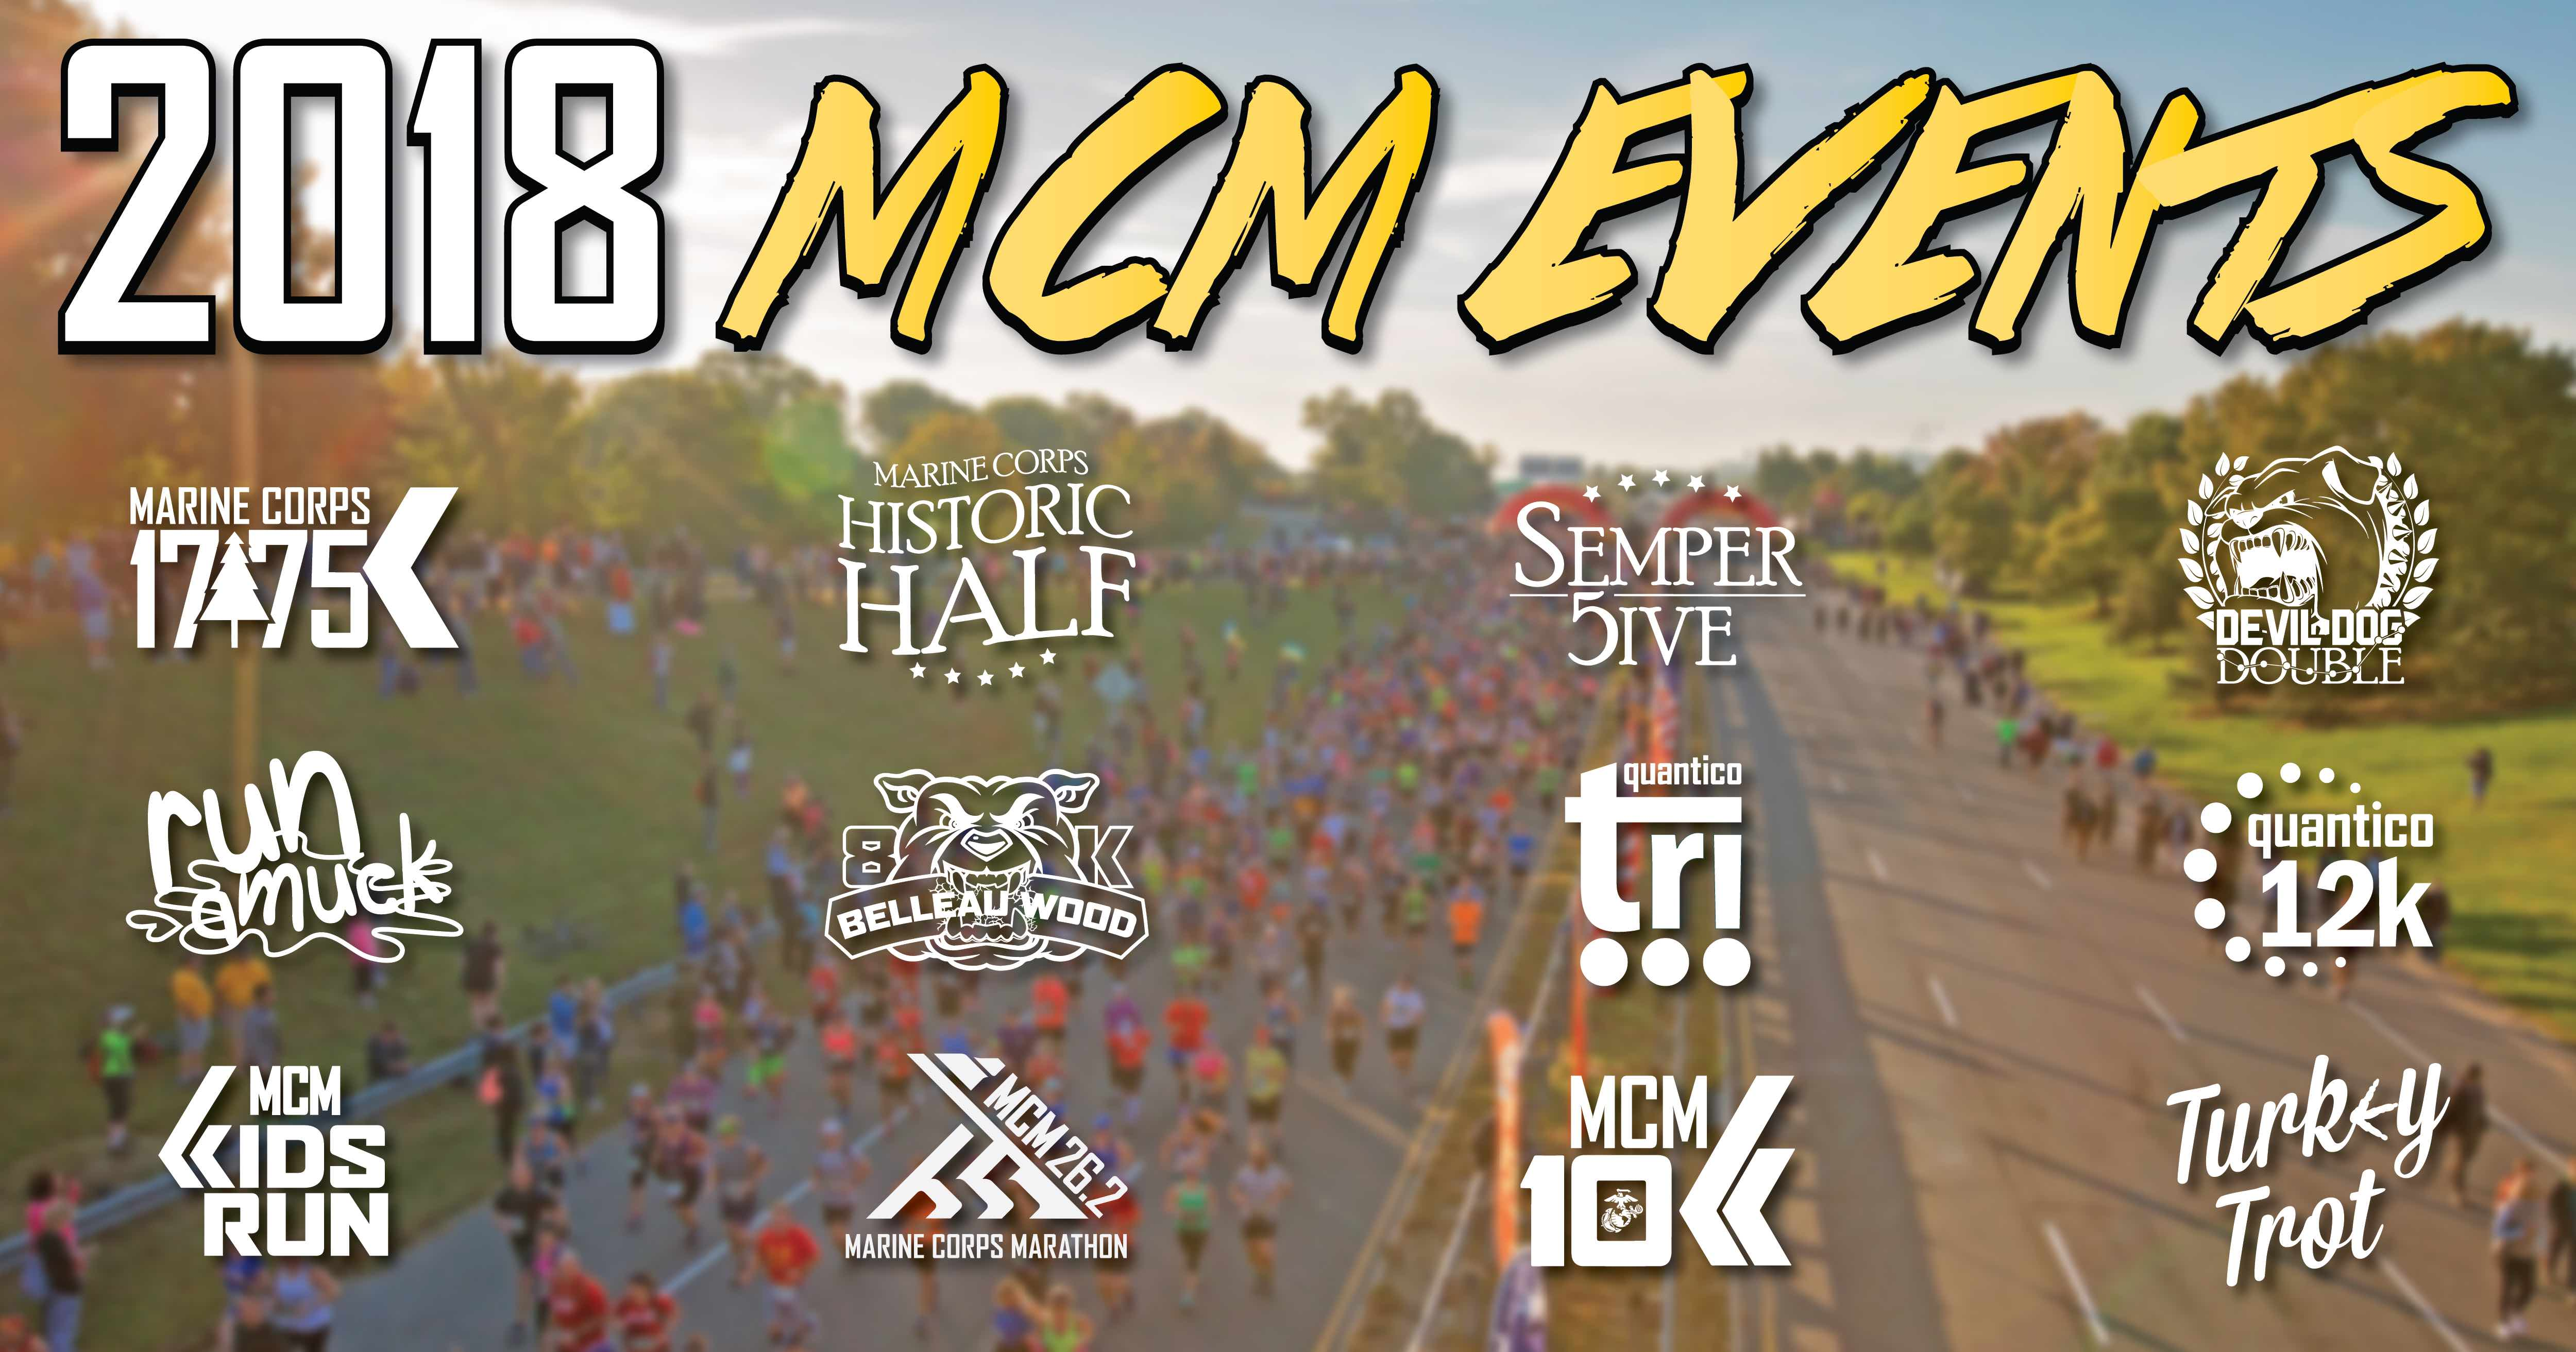 four things to know about 2018 mcm events marine corps marathon